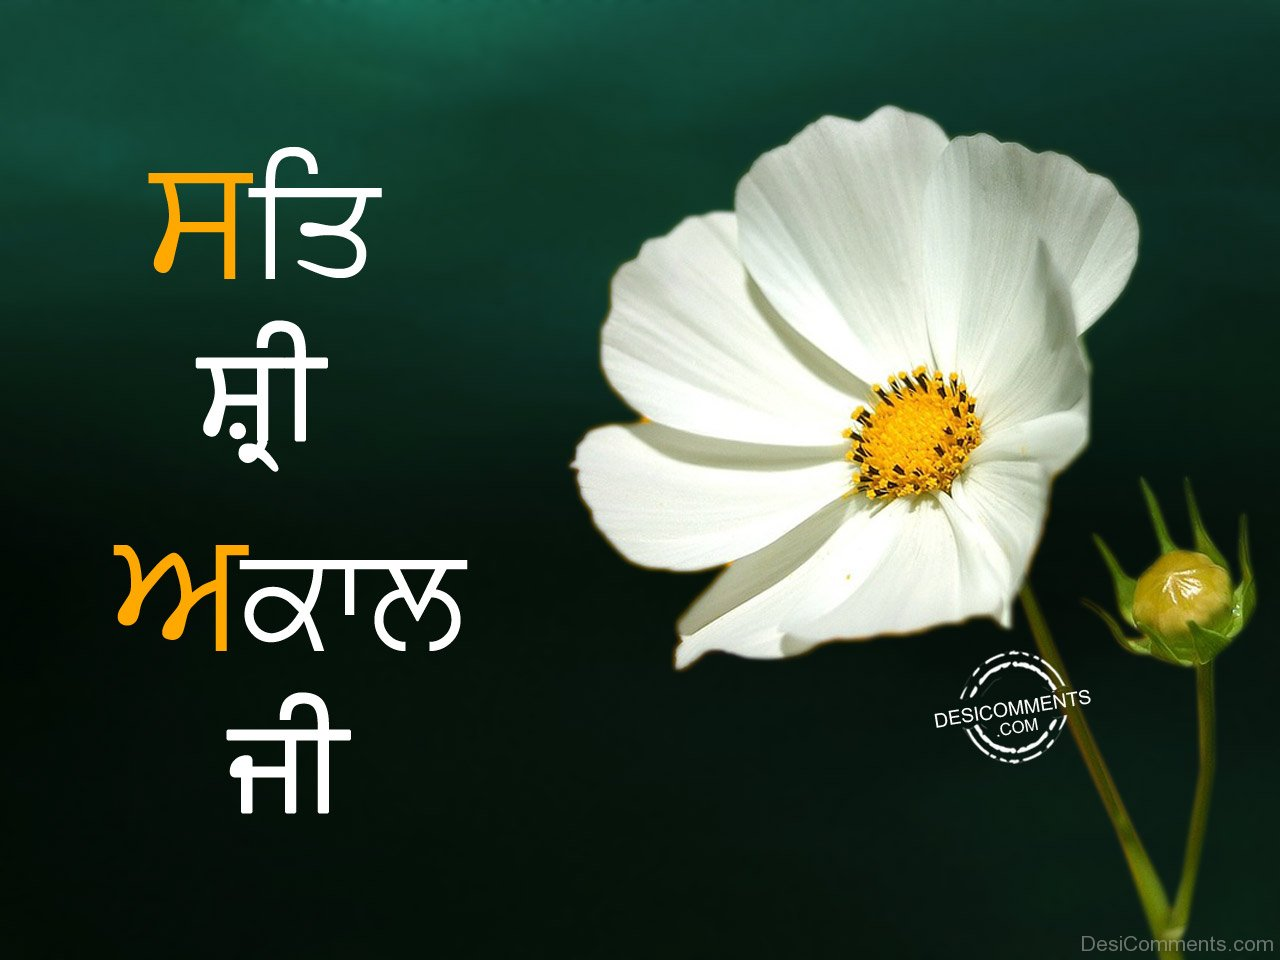 Sat sri akal with very beautiful flower desicomments sat sri akal with very beautiful flower izmirmasajfo